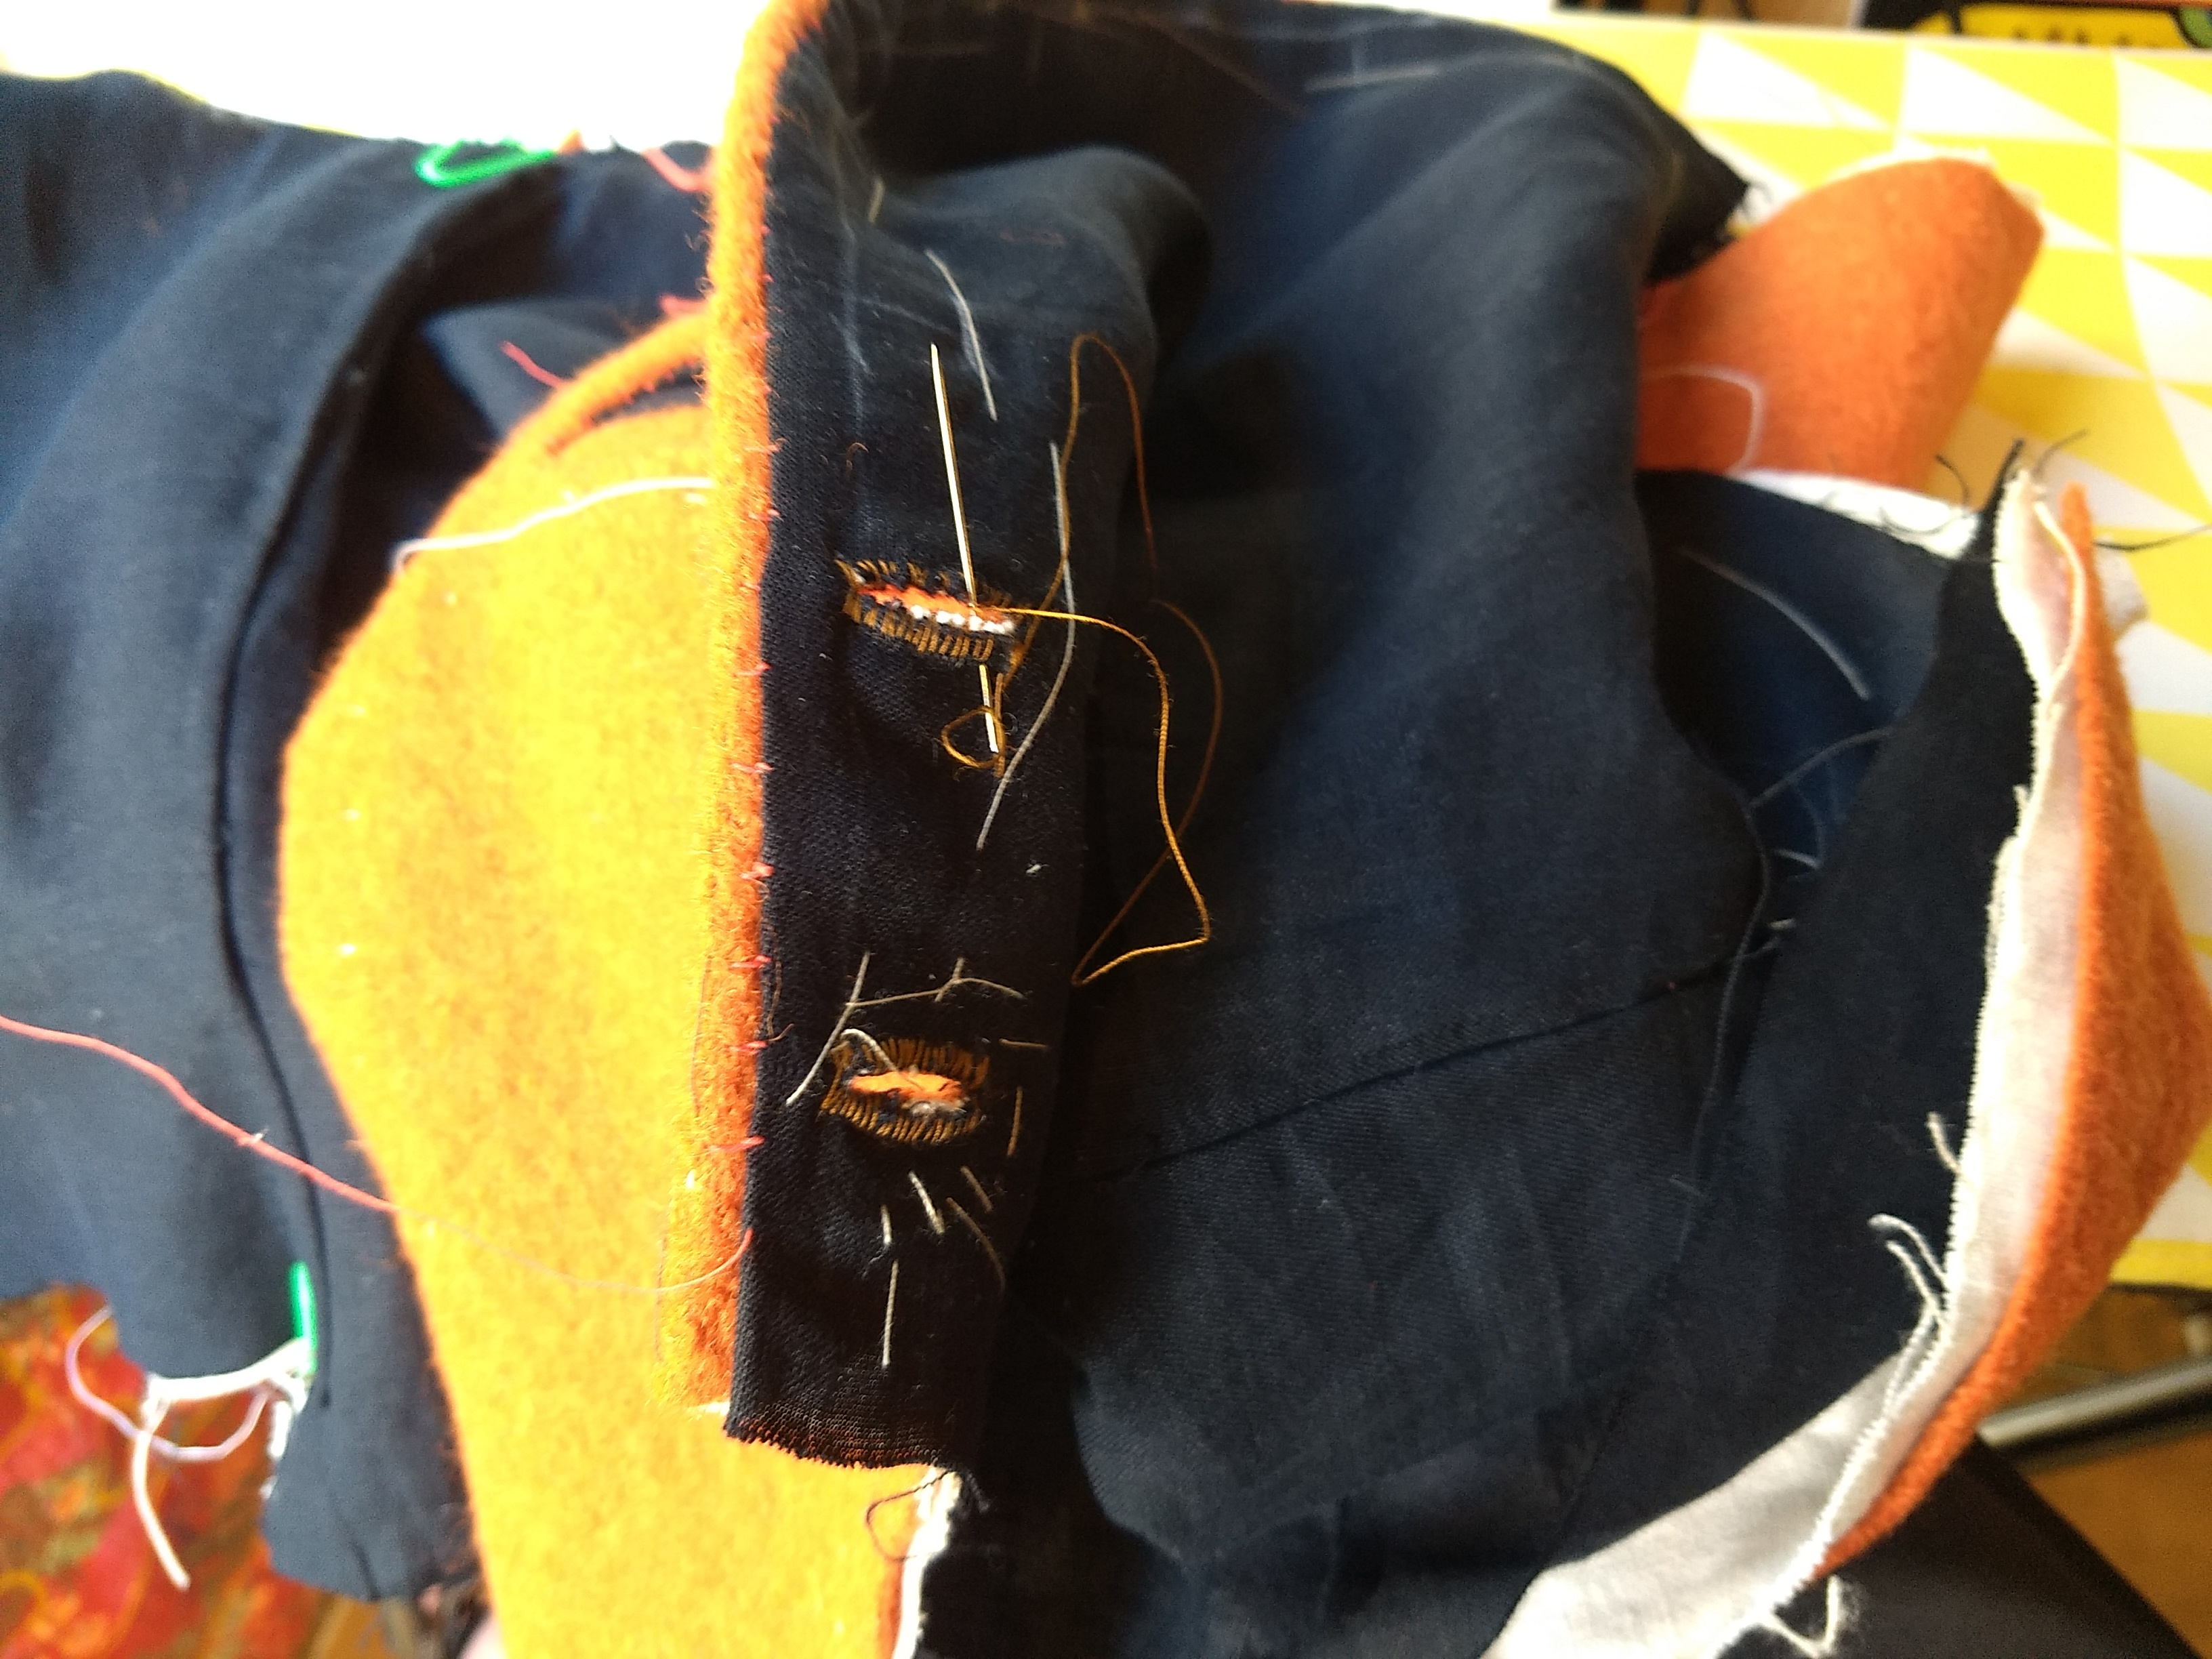 Buttonholes being sewed with silk to an orange woolen vest lined with black linen